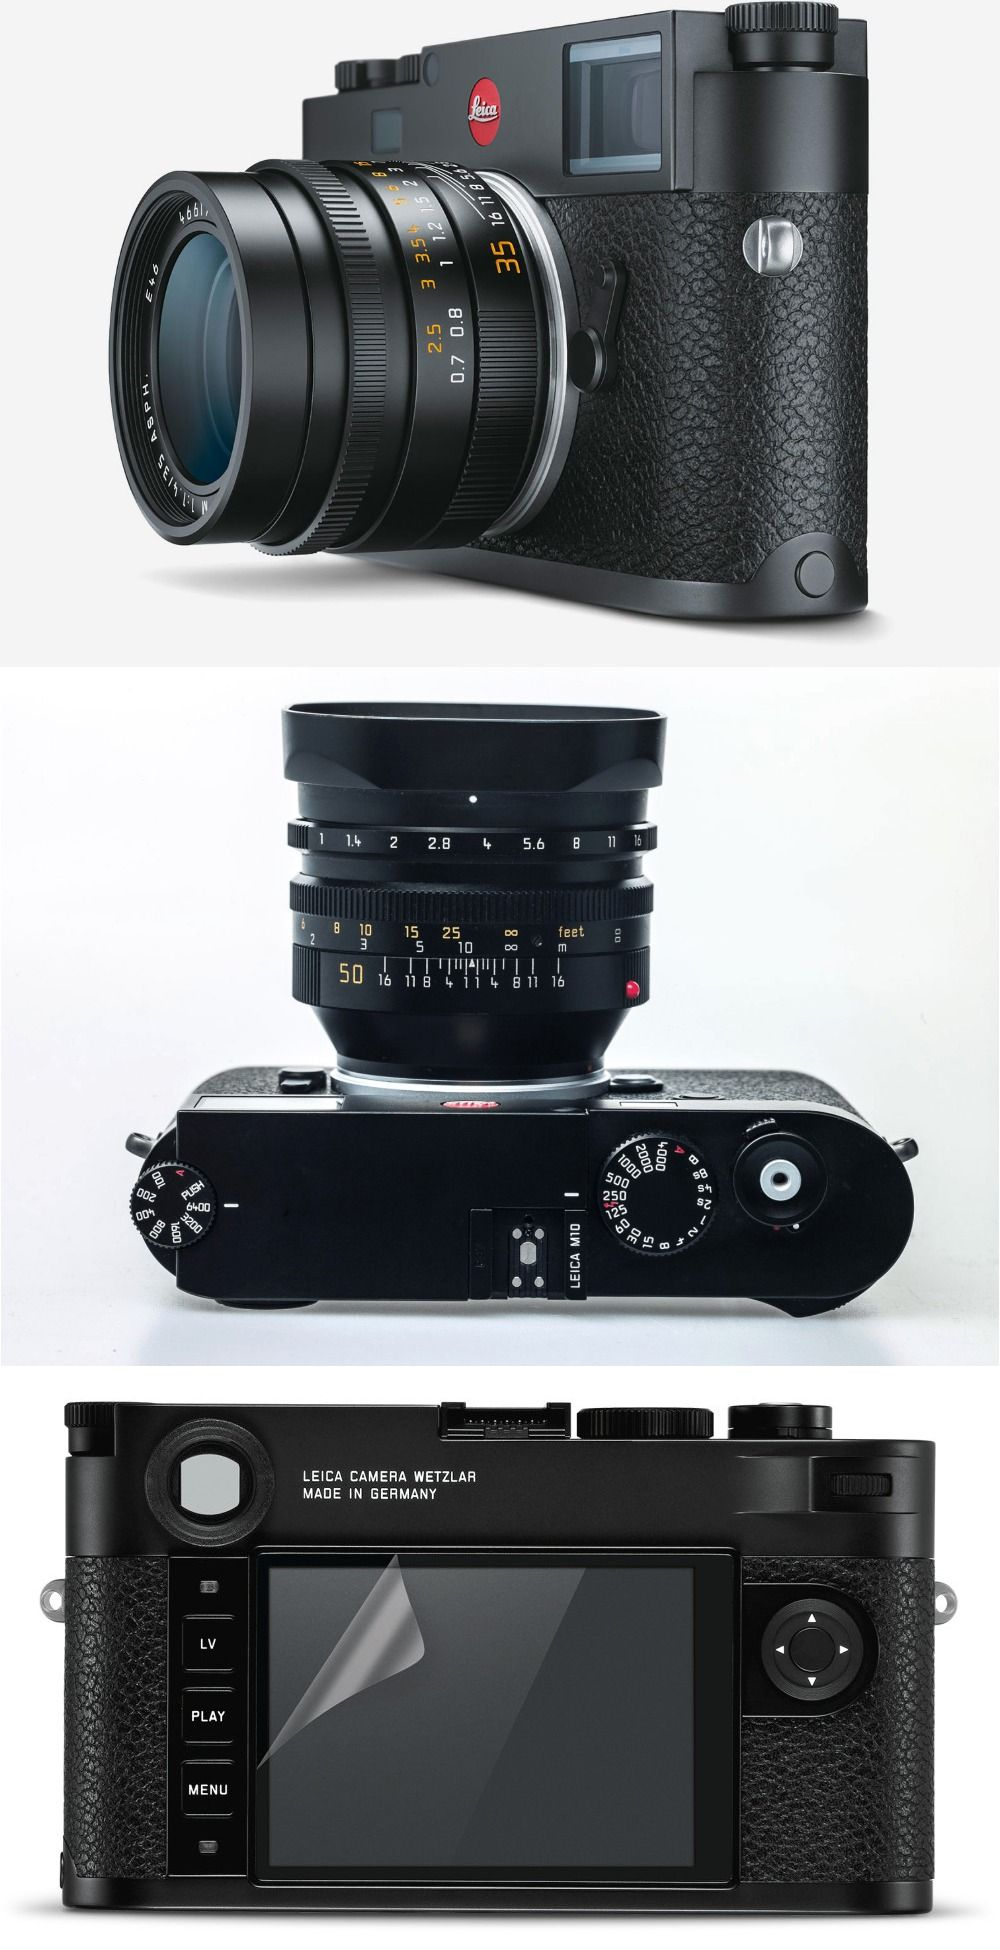 Leica M10 Launched With 24-Megapixel Full-Frame CMOS Sensor and ISO ...